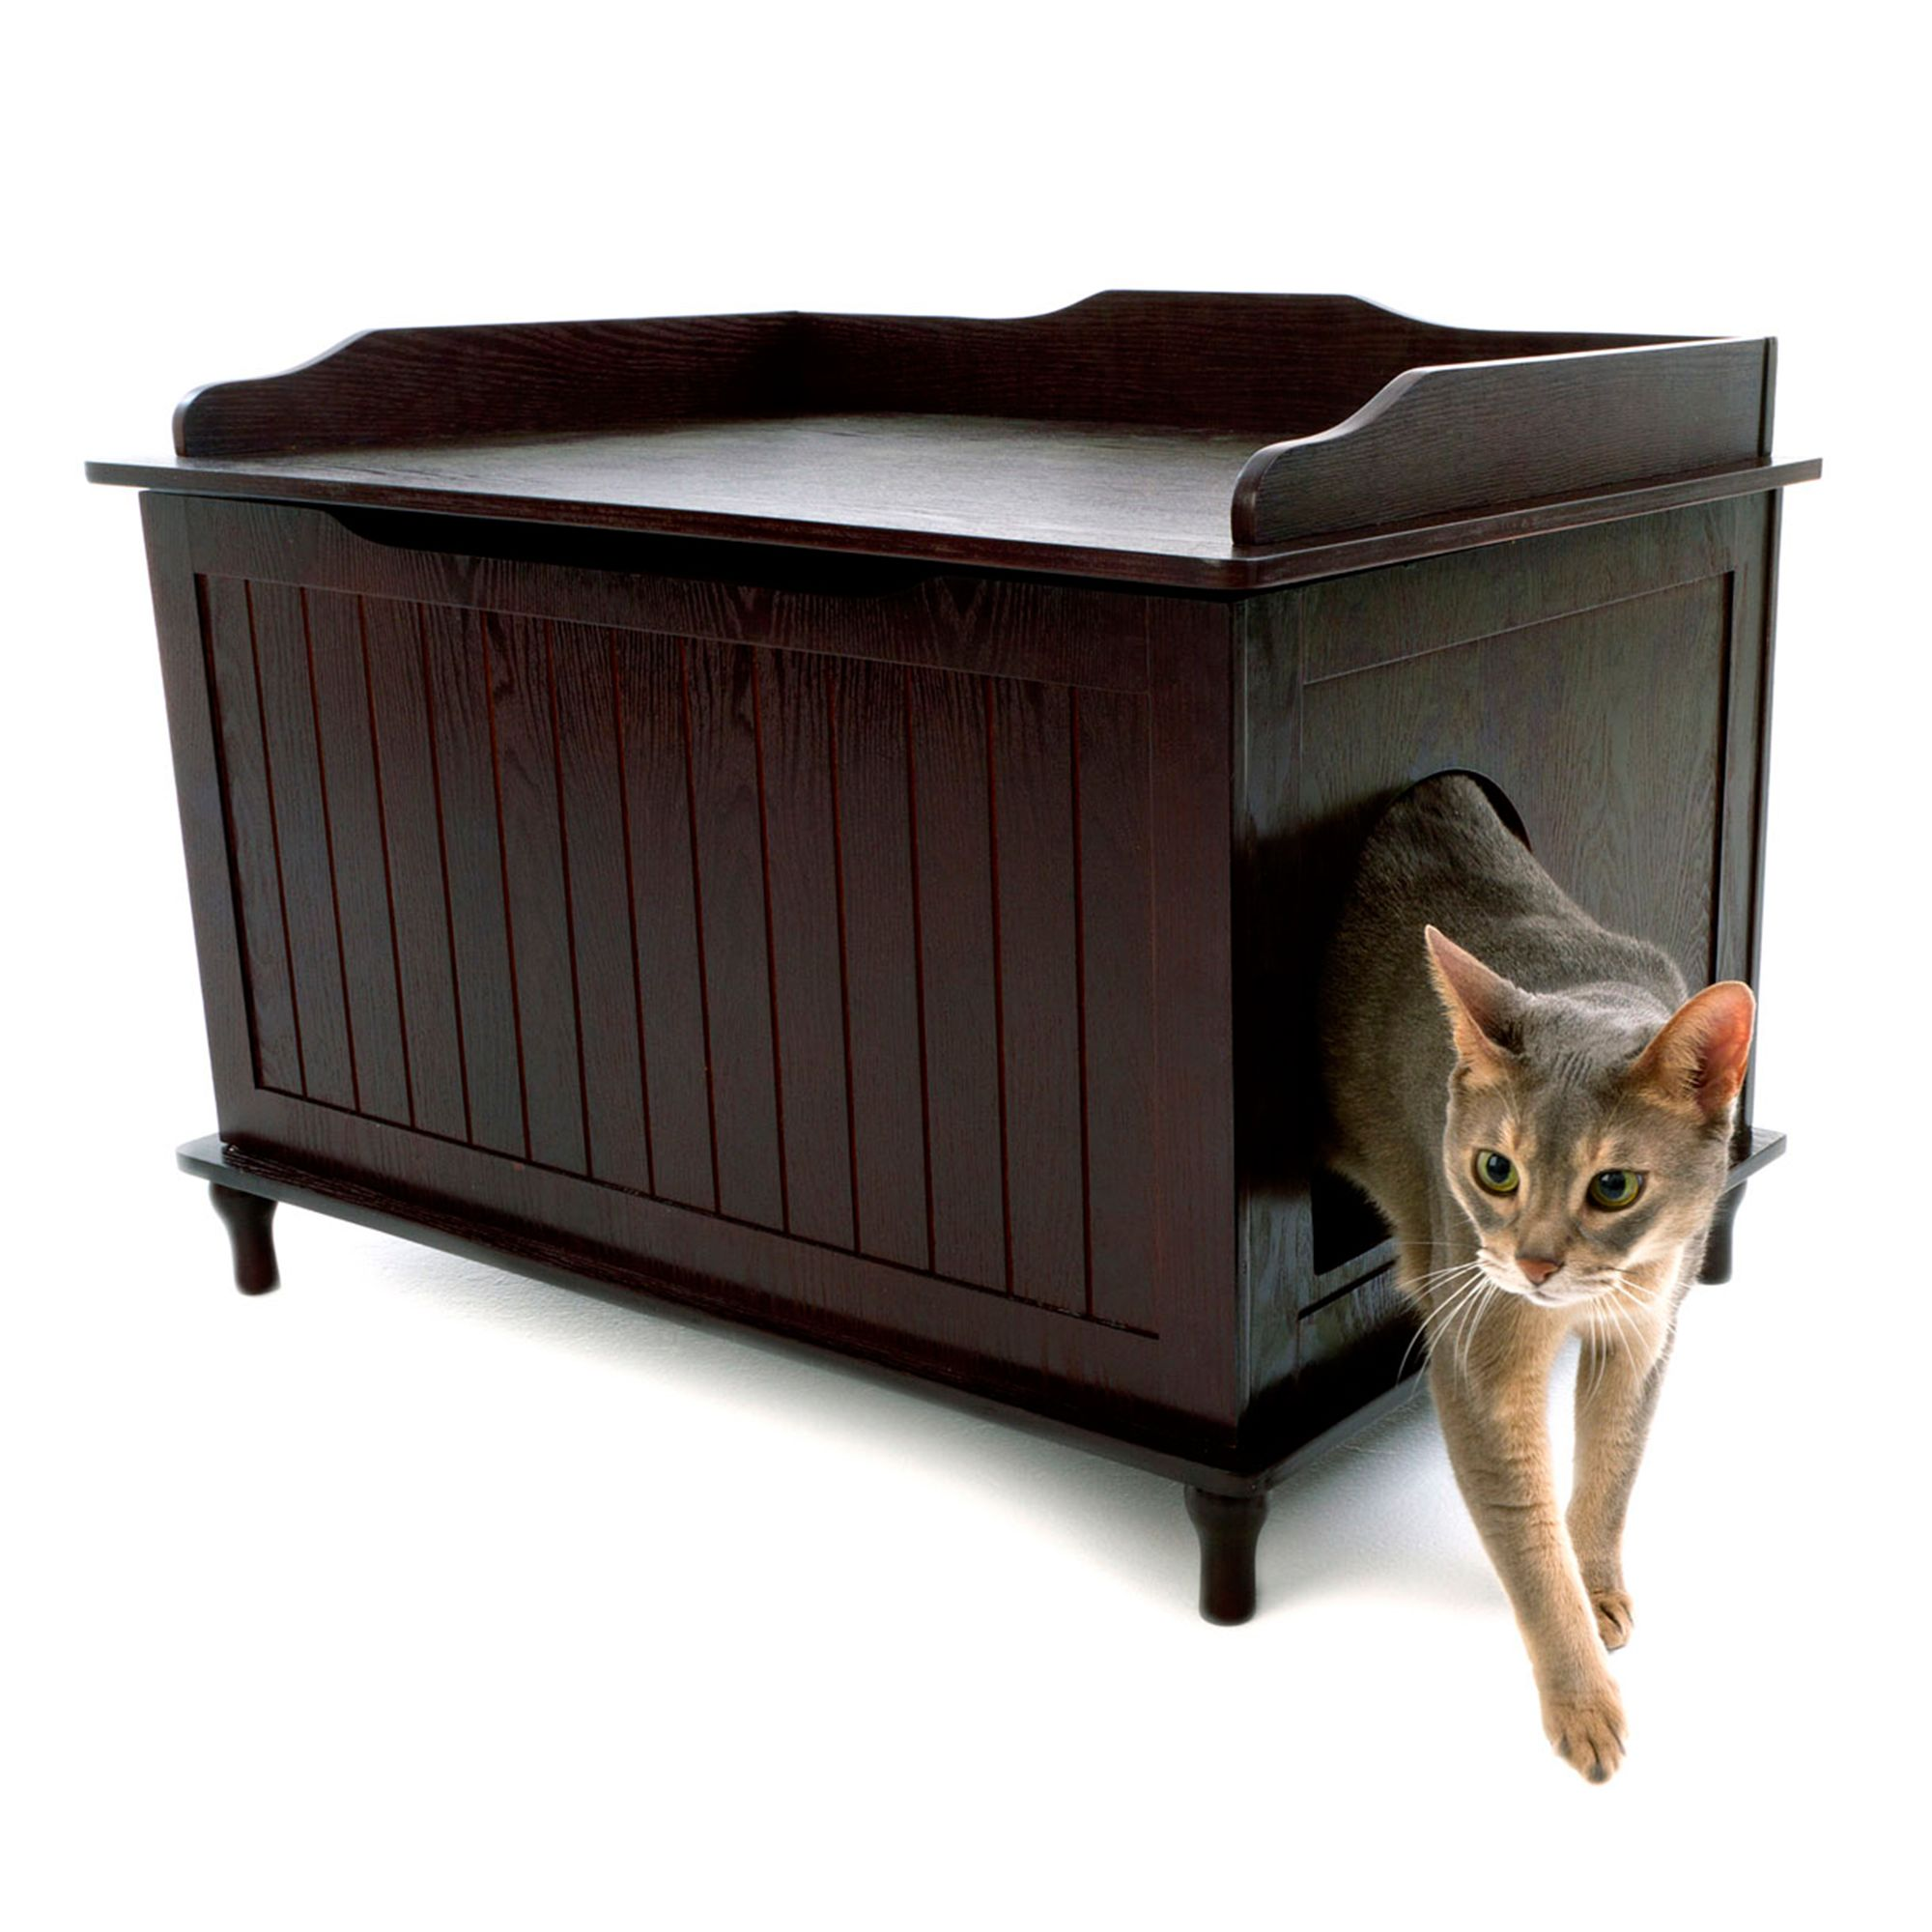 Designer Pet Products Designer Cat Litter Box Size 29.1l X 20.6w X 20.8h Brown